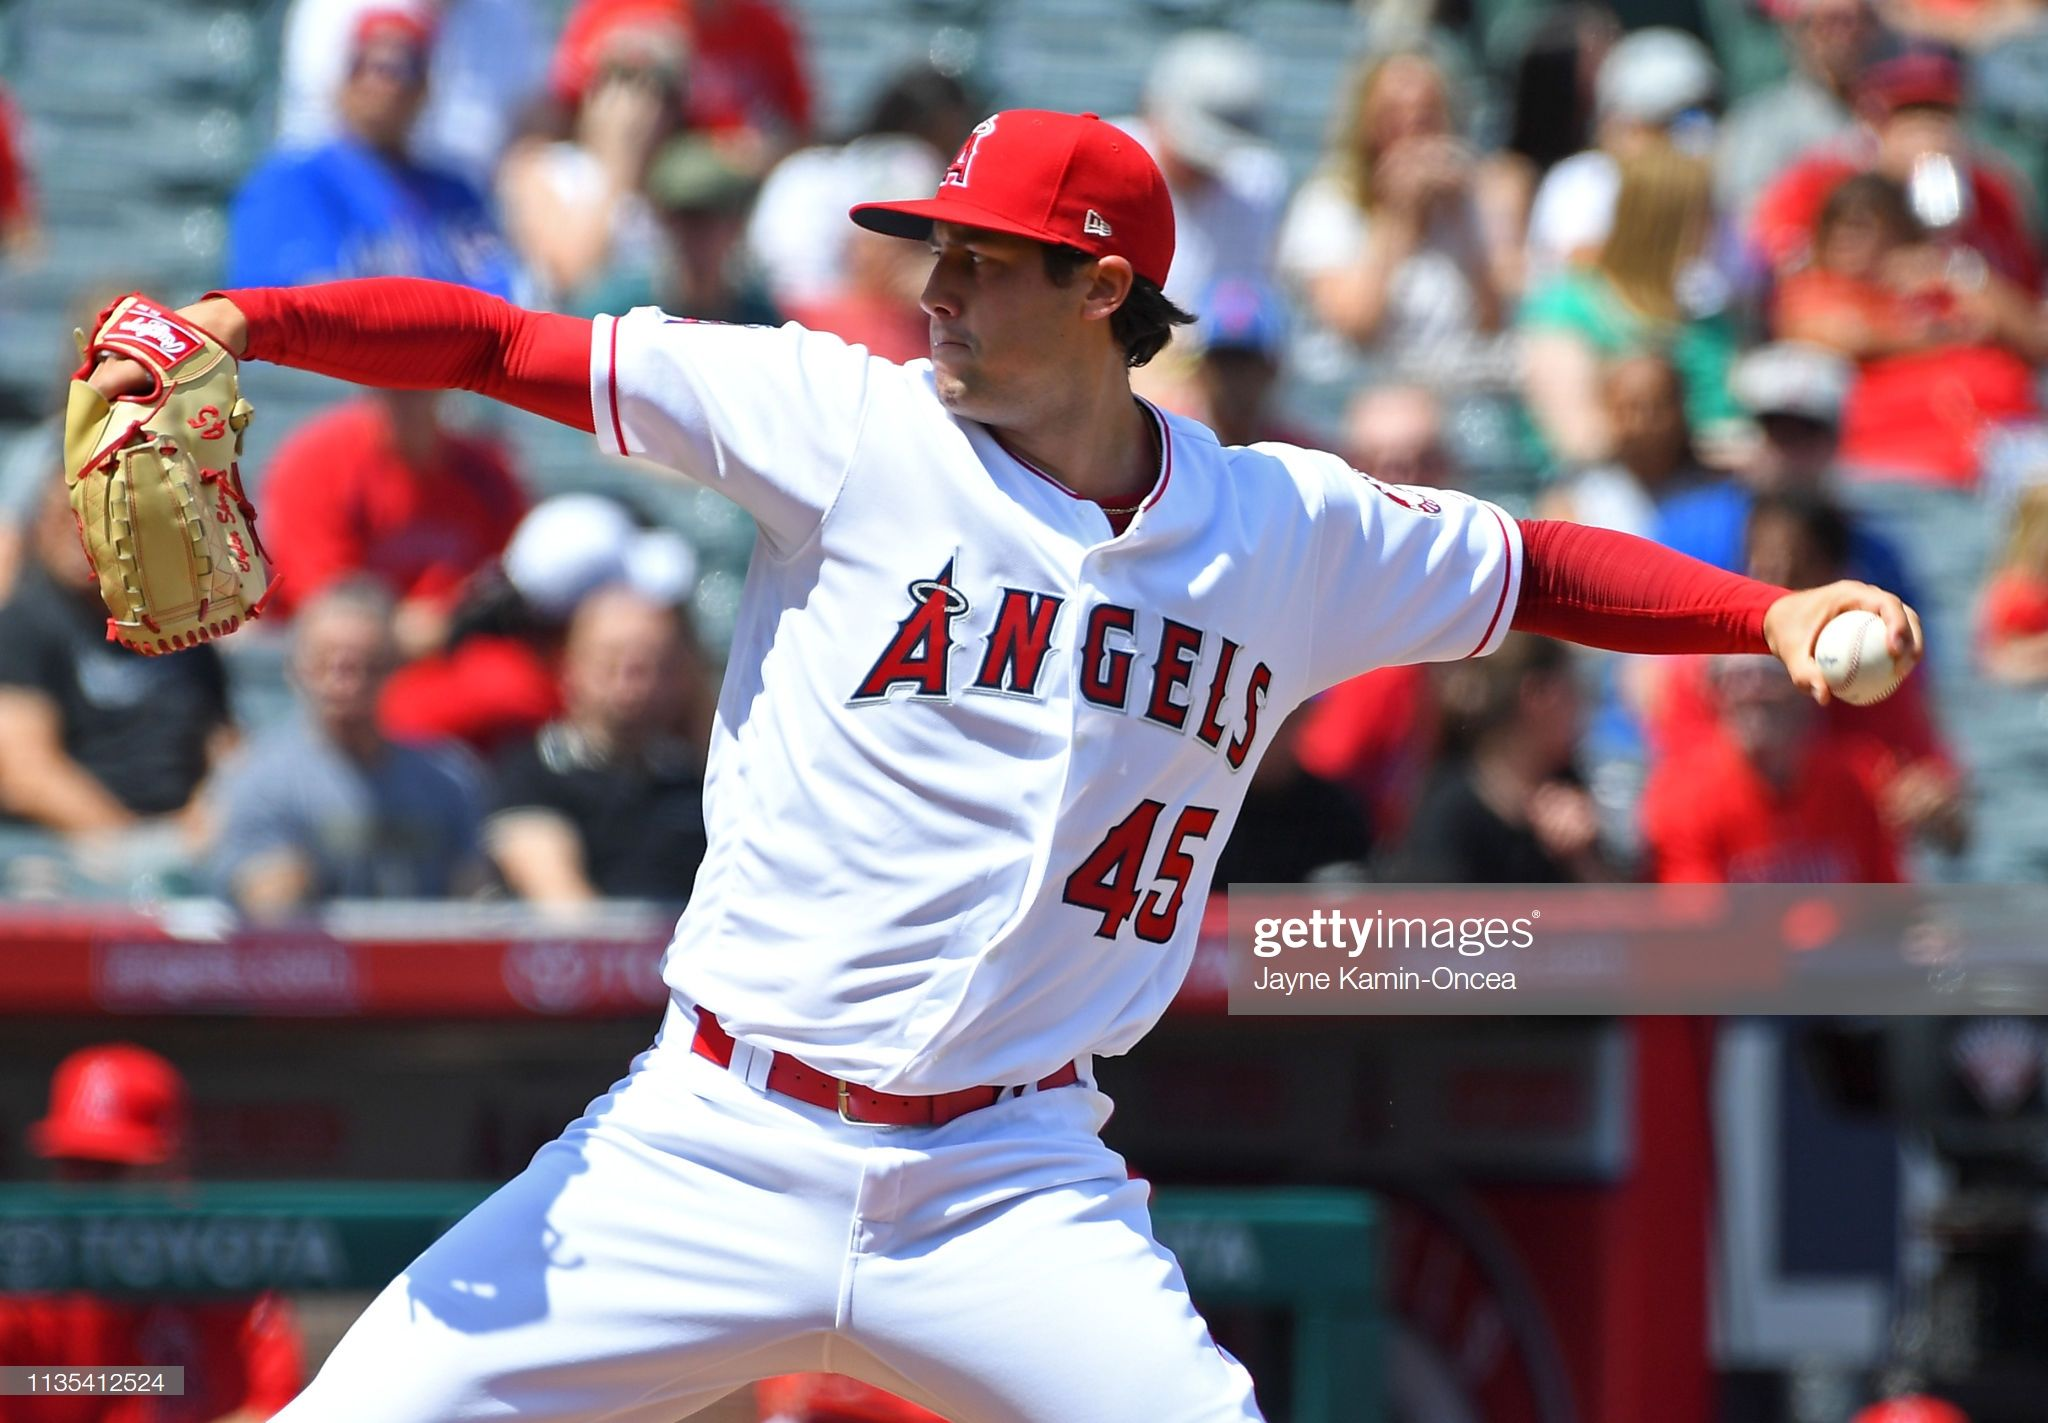 Tyler Skaggs Of The Los Angeles Angels Of Anaheim Pitches In The Los Angeles Angels Angels Baseball Team Tyler